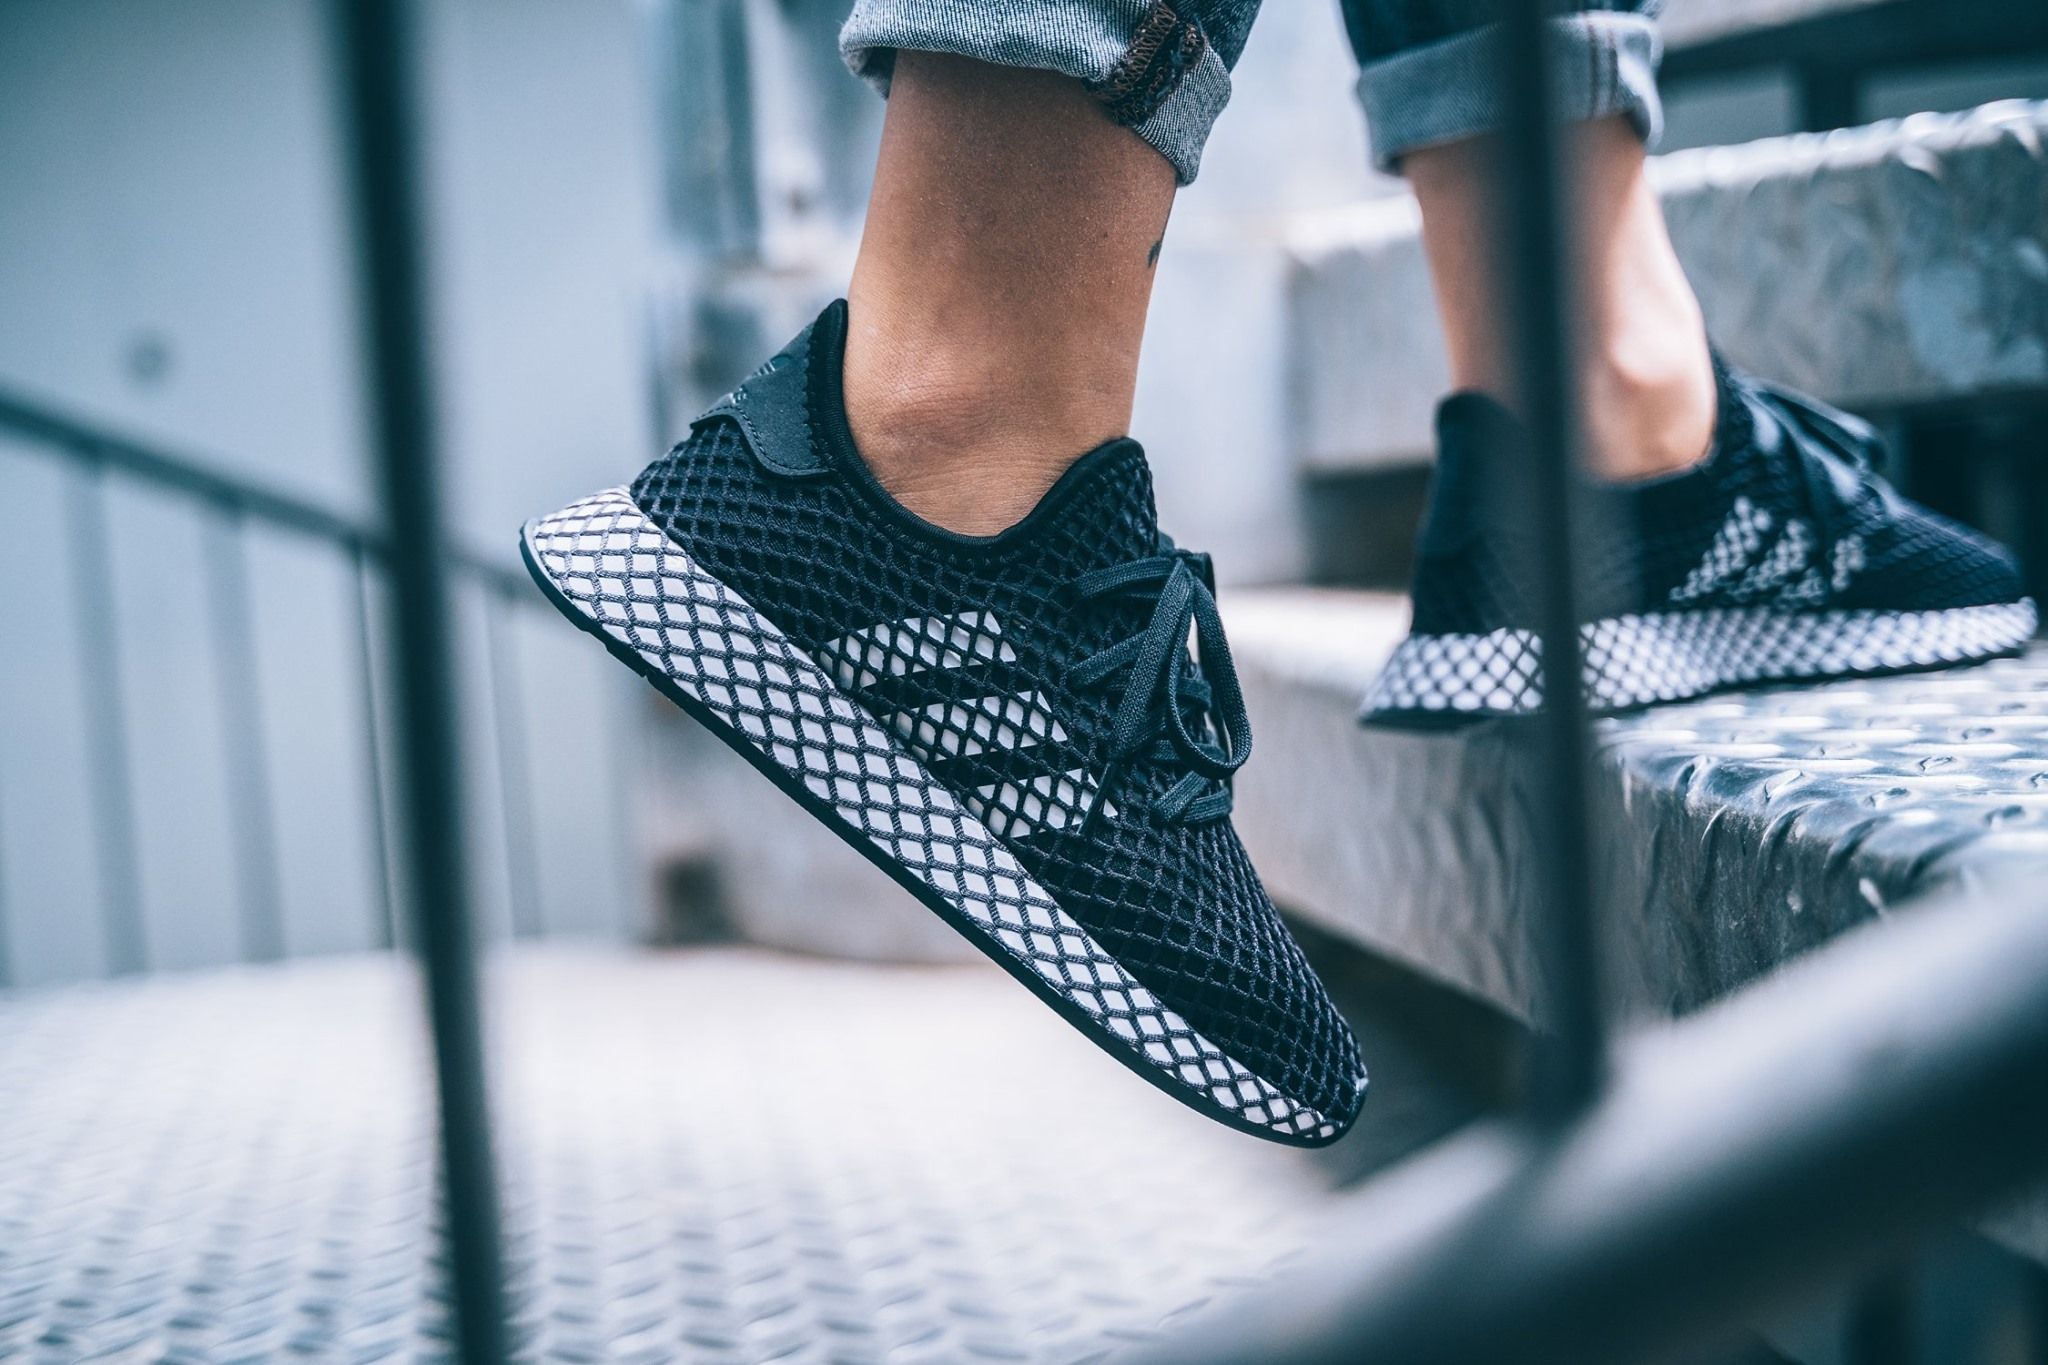 adidas *Deerupt Runner* @jumpnshoez #JNS #sneaker #fashion